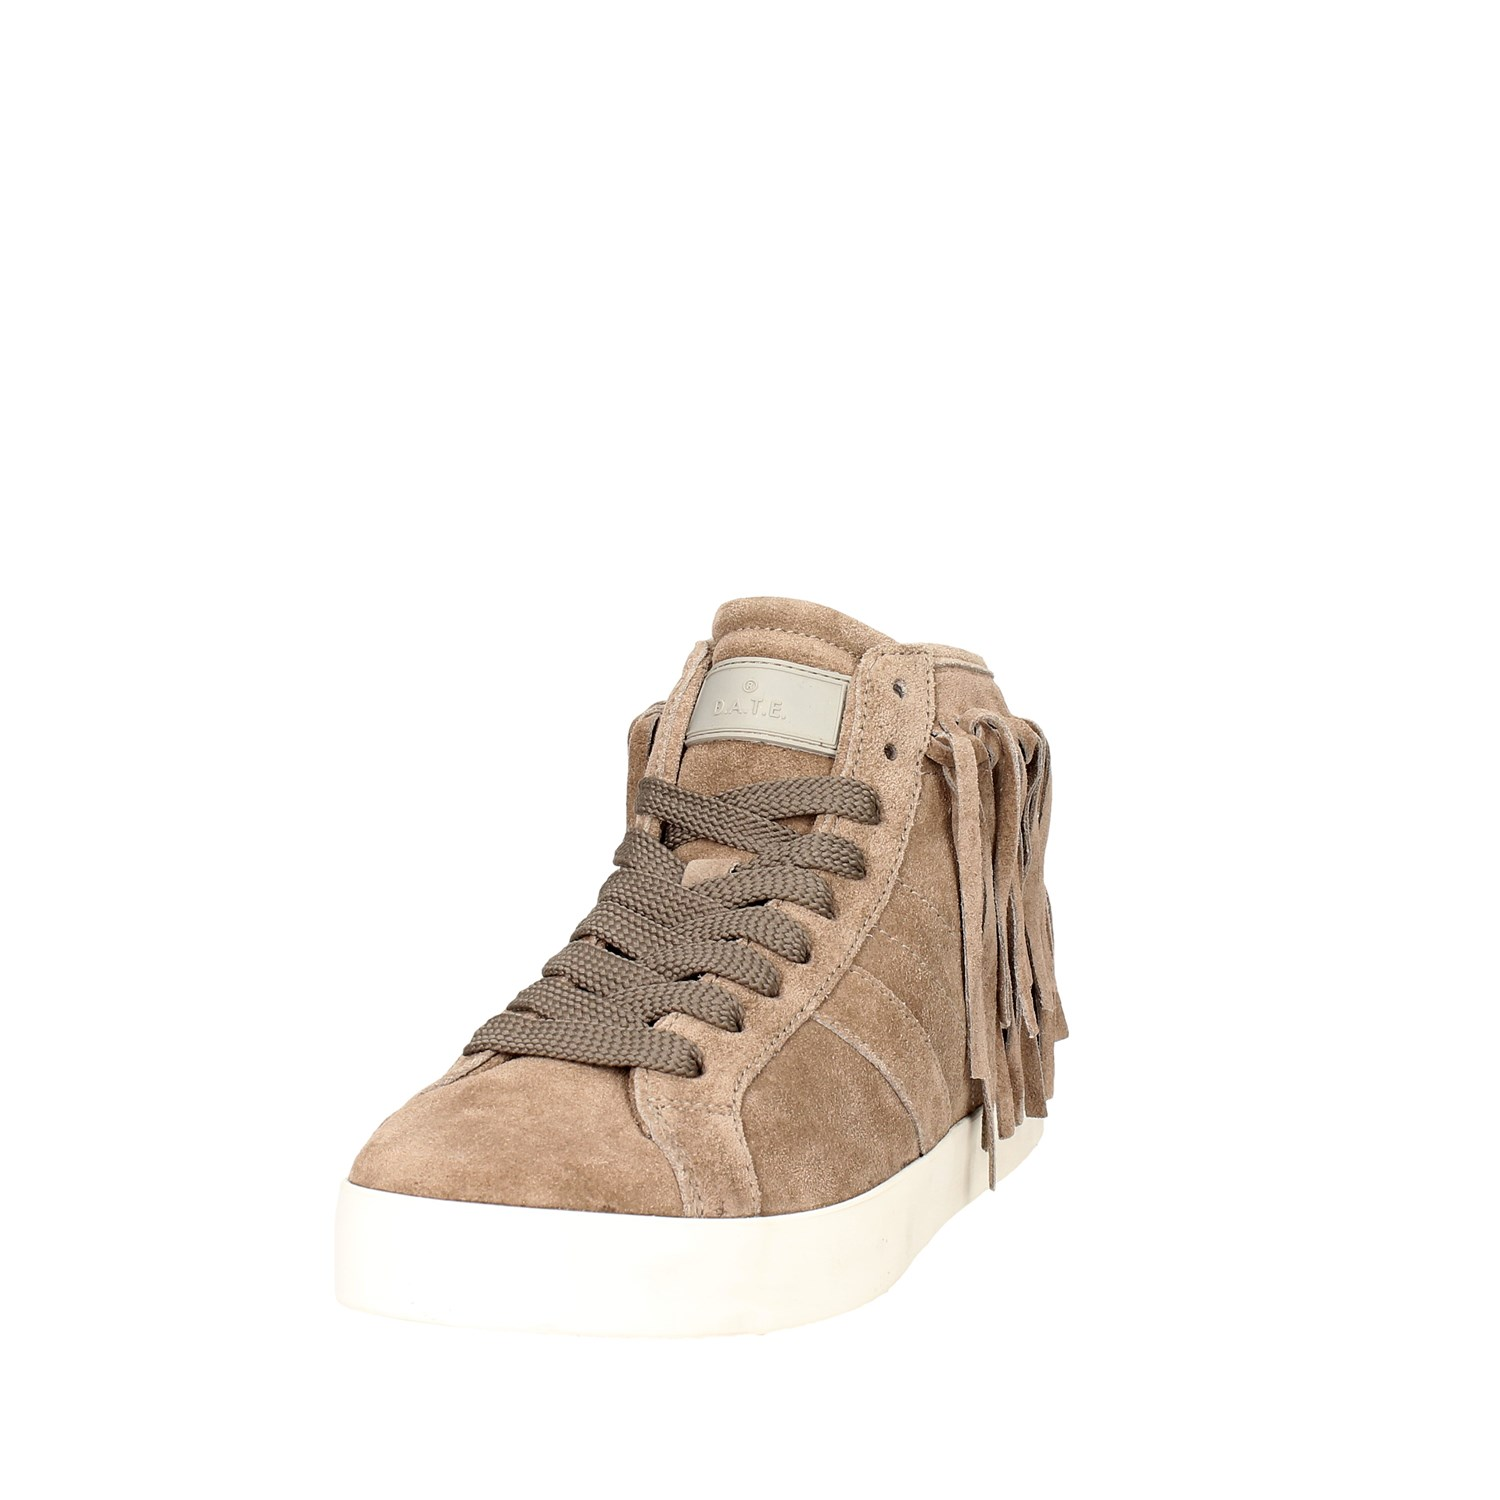 Hoch Sneakers  Damen HIGH-31I D.a.t.e. HILL HIGH-31I Damen Herbst/Winter af0045